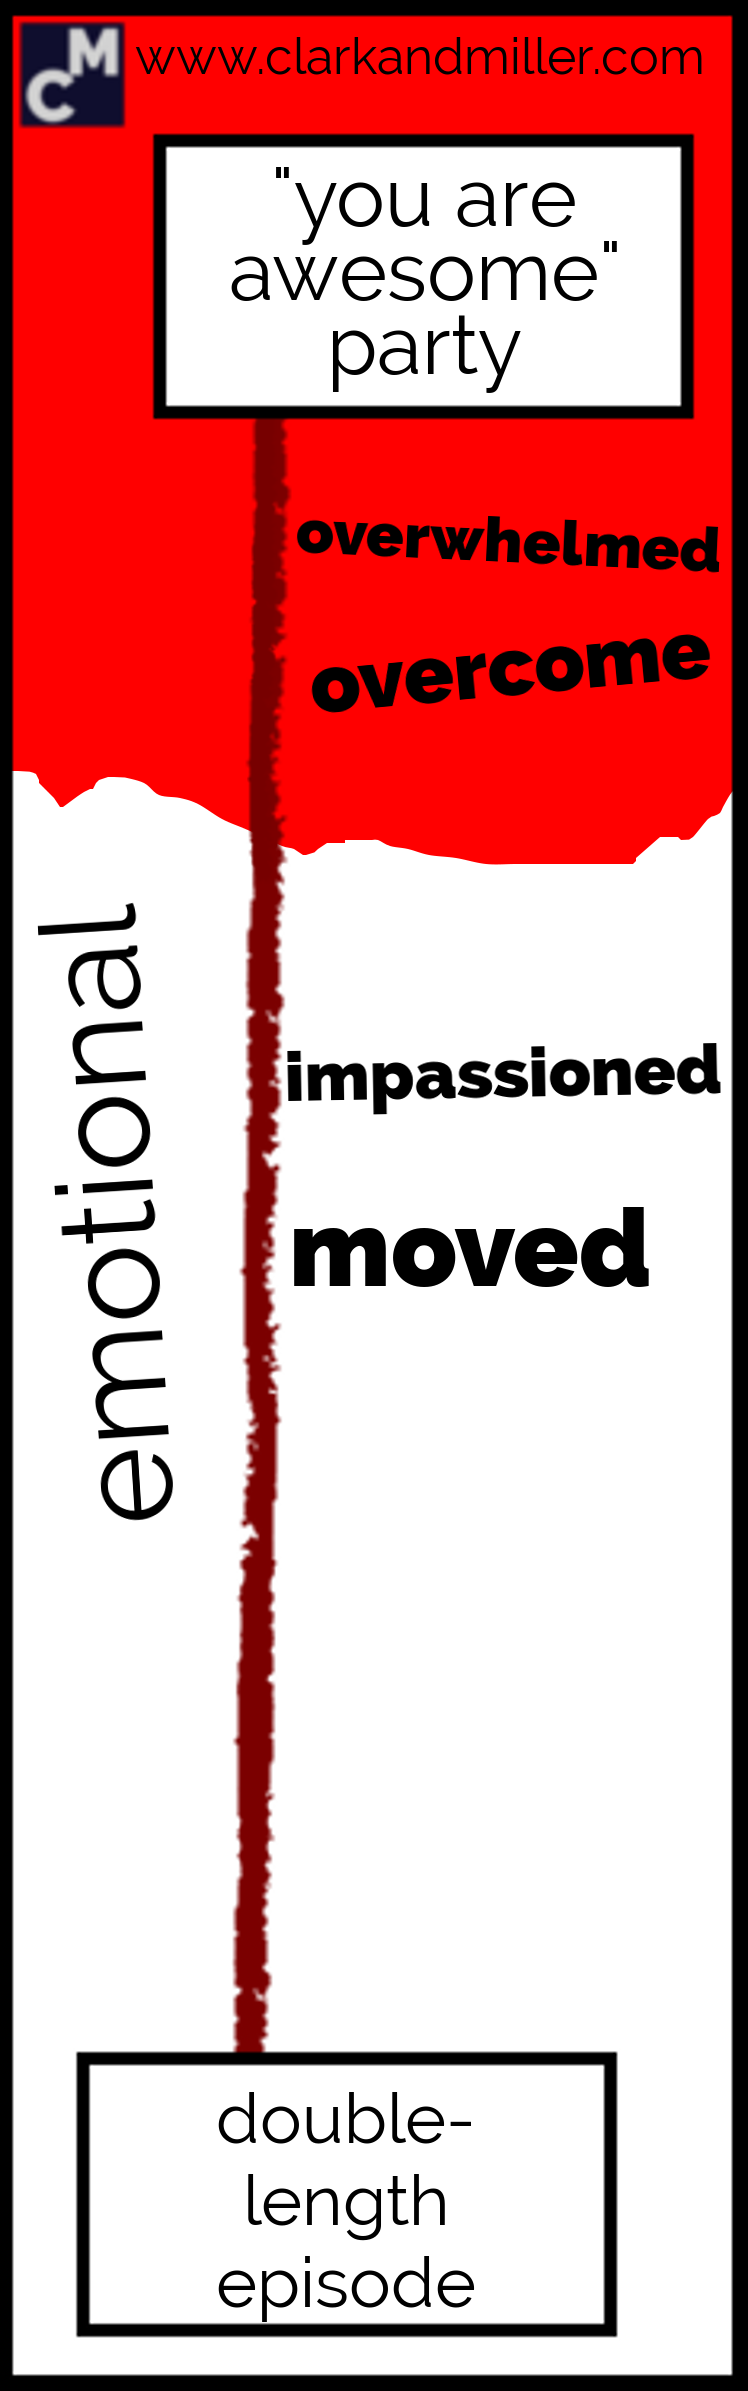 Words for emotional: overwhelmed, overcome, impassioned, moved